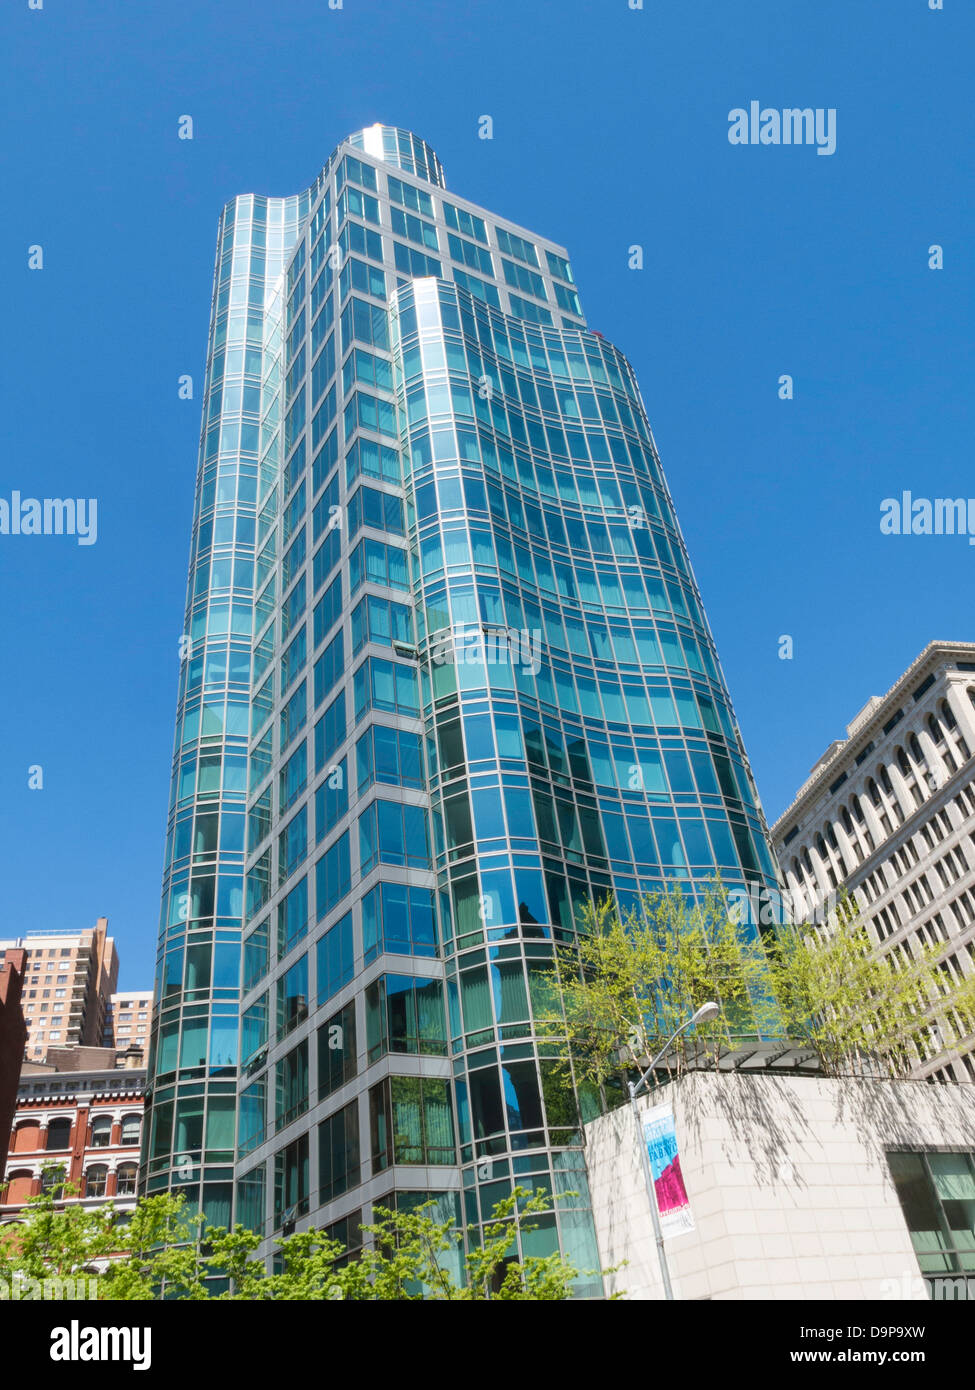 Astor Place Apartments